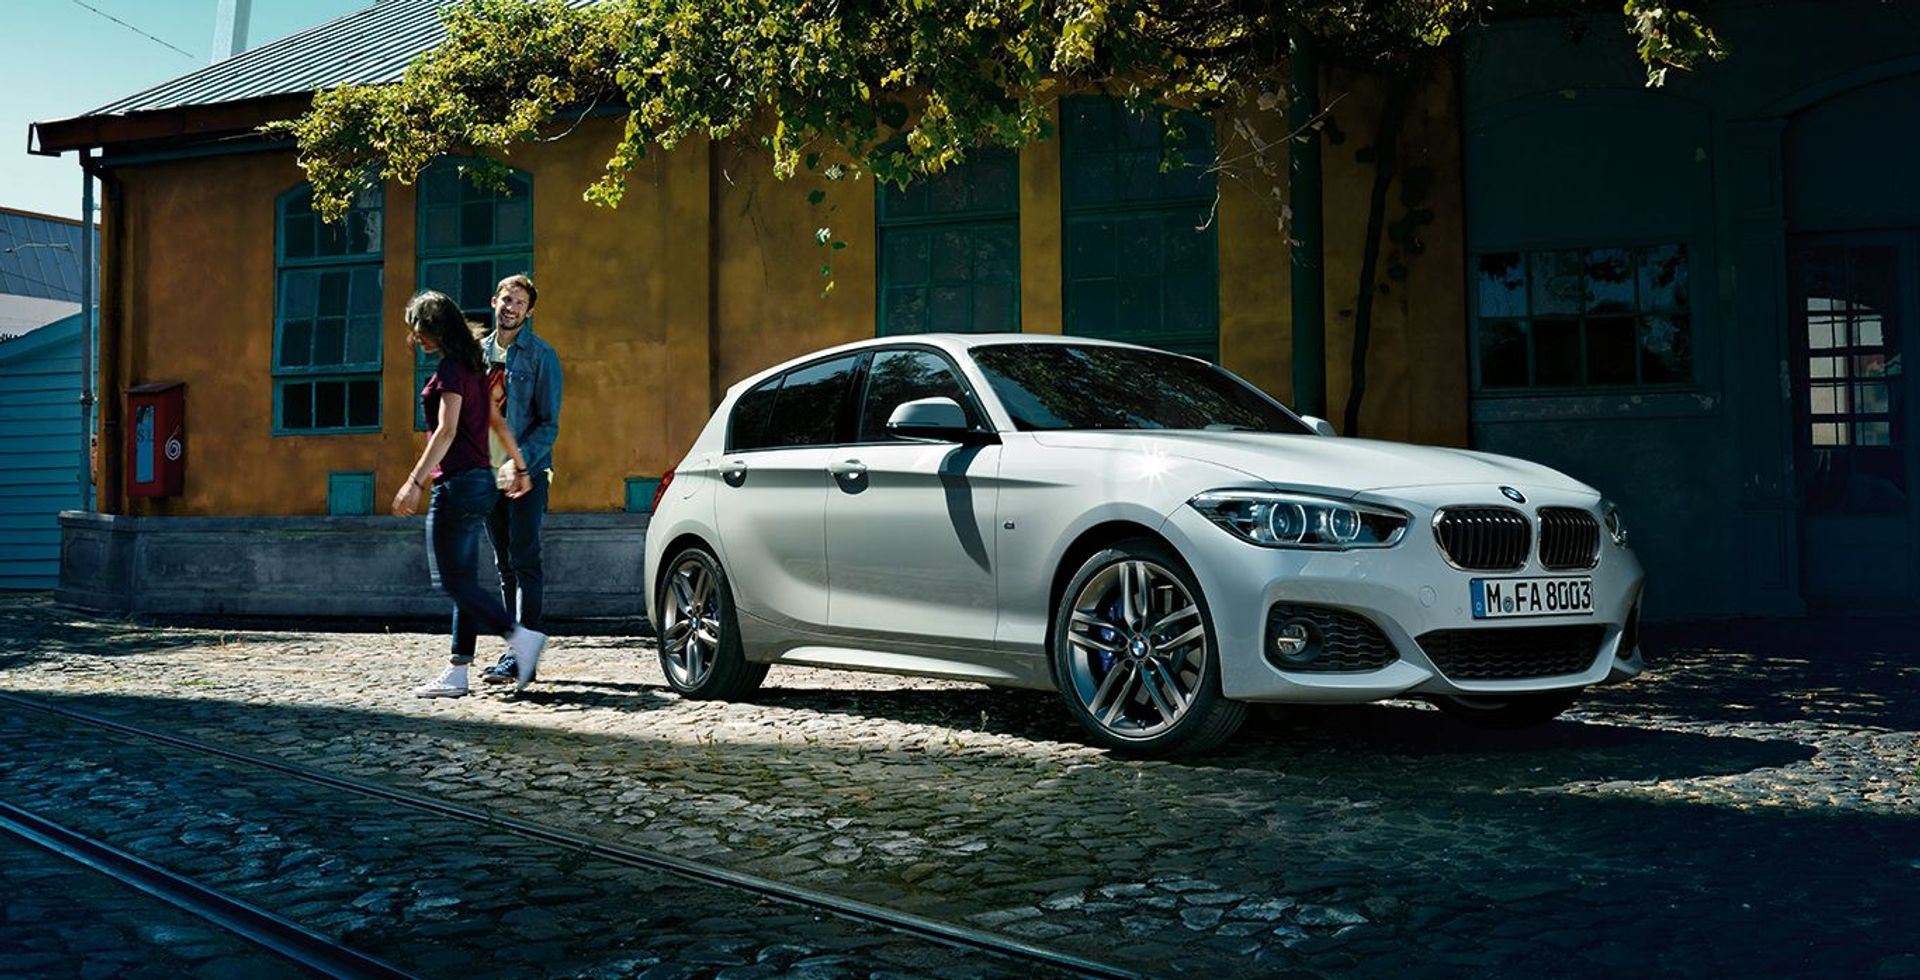 BMW 1 Series 120d image